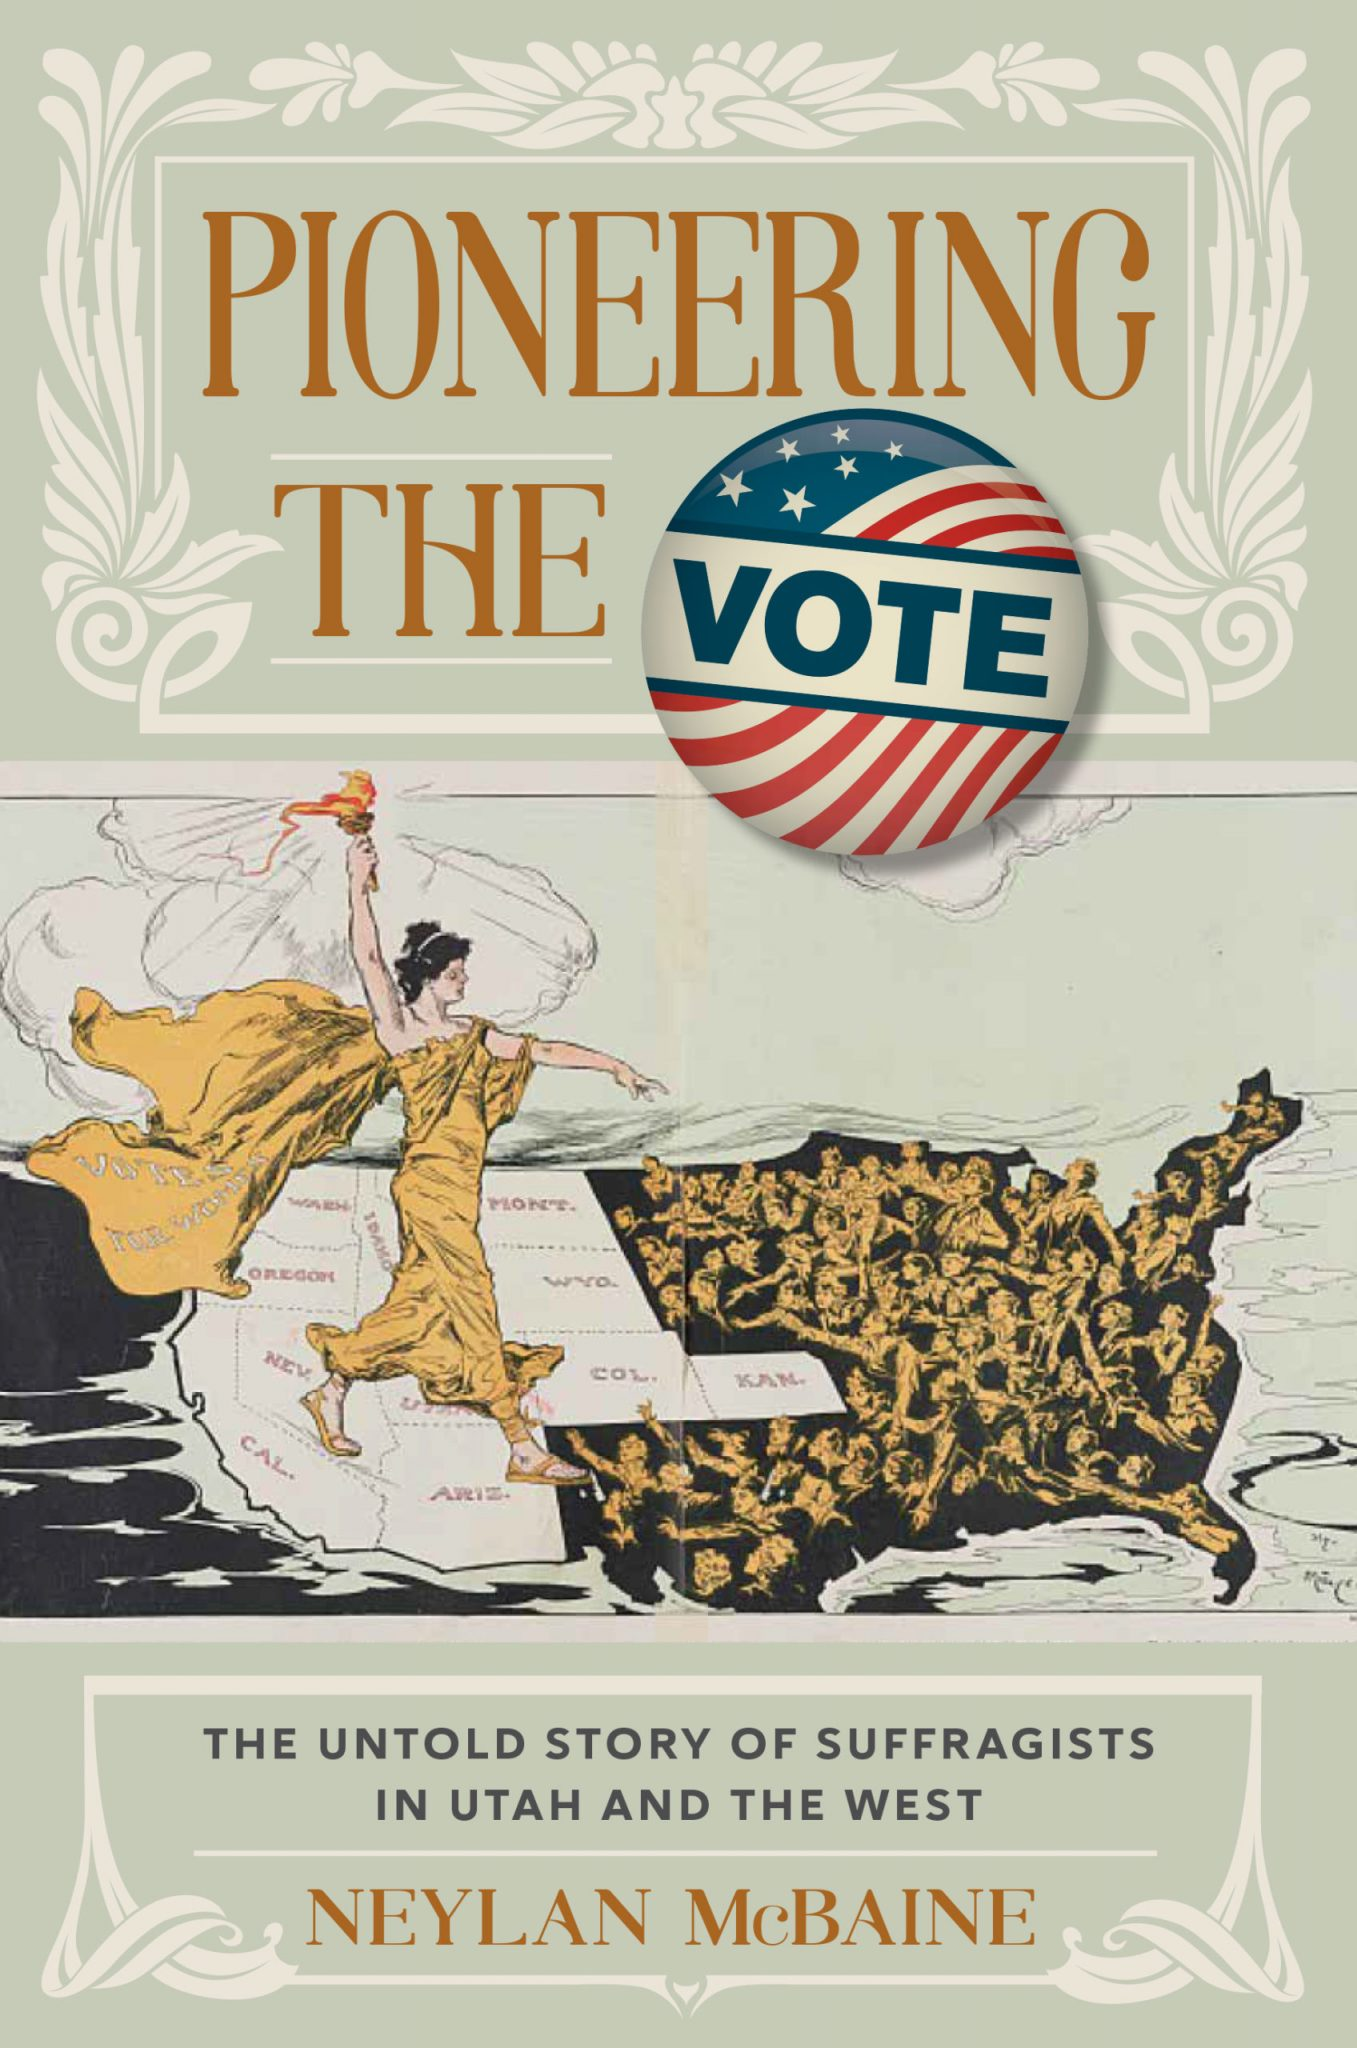 Pioneering the Vote by Neylan McBaine